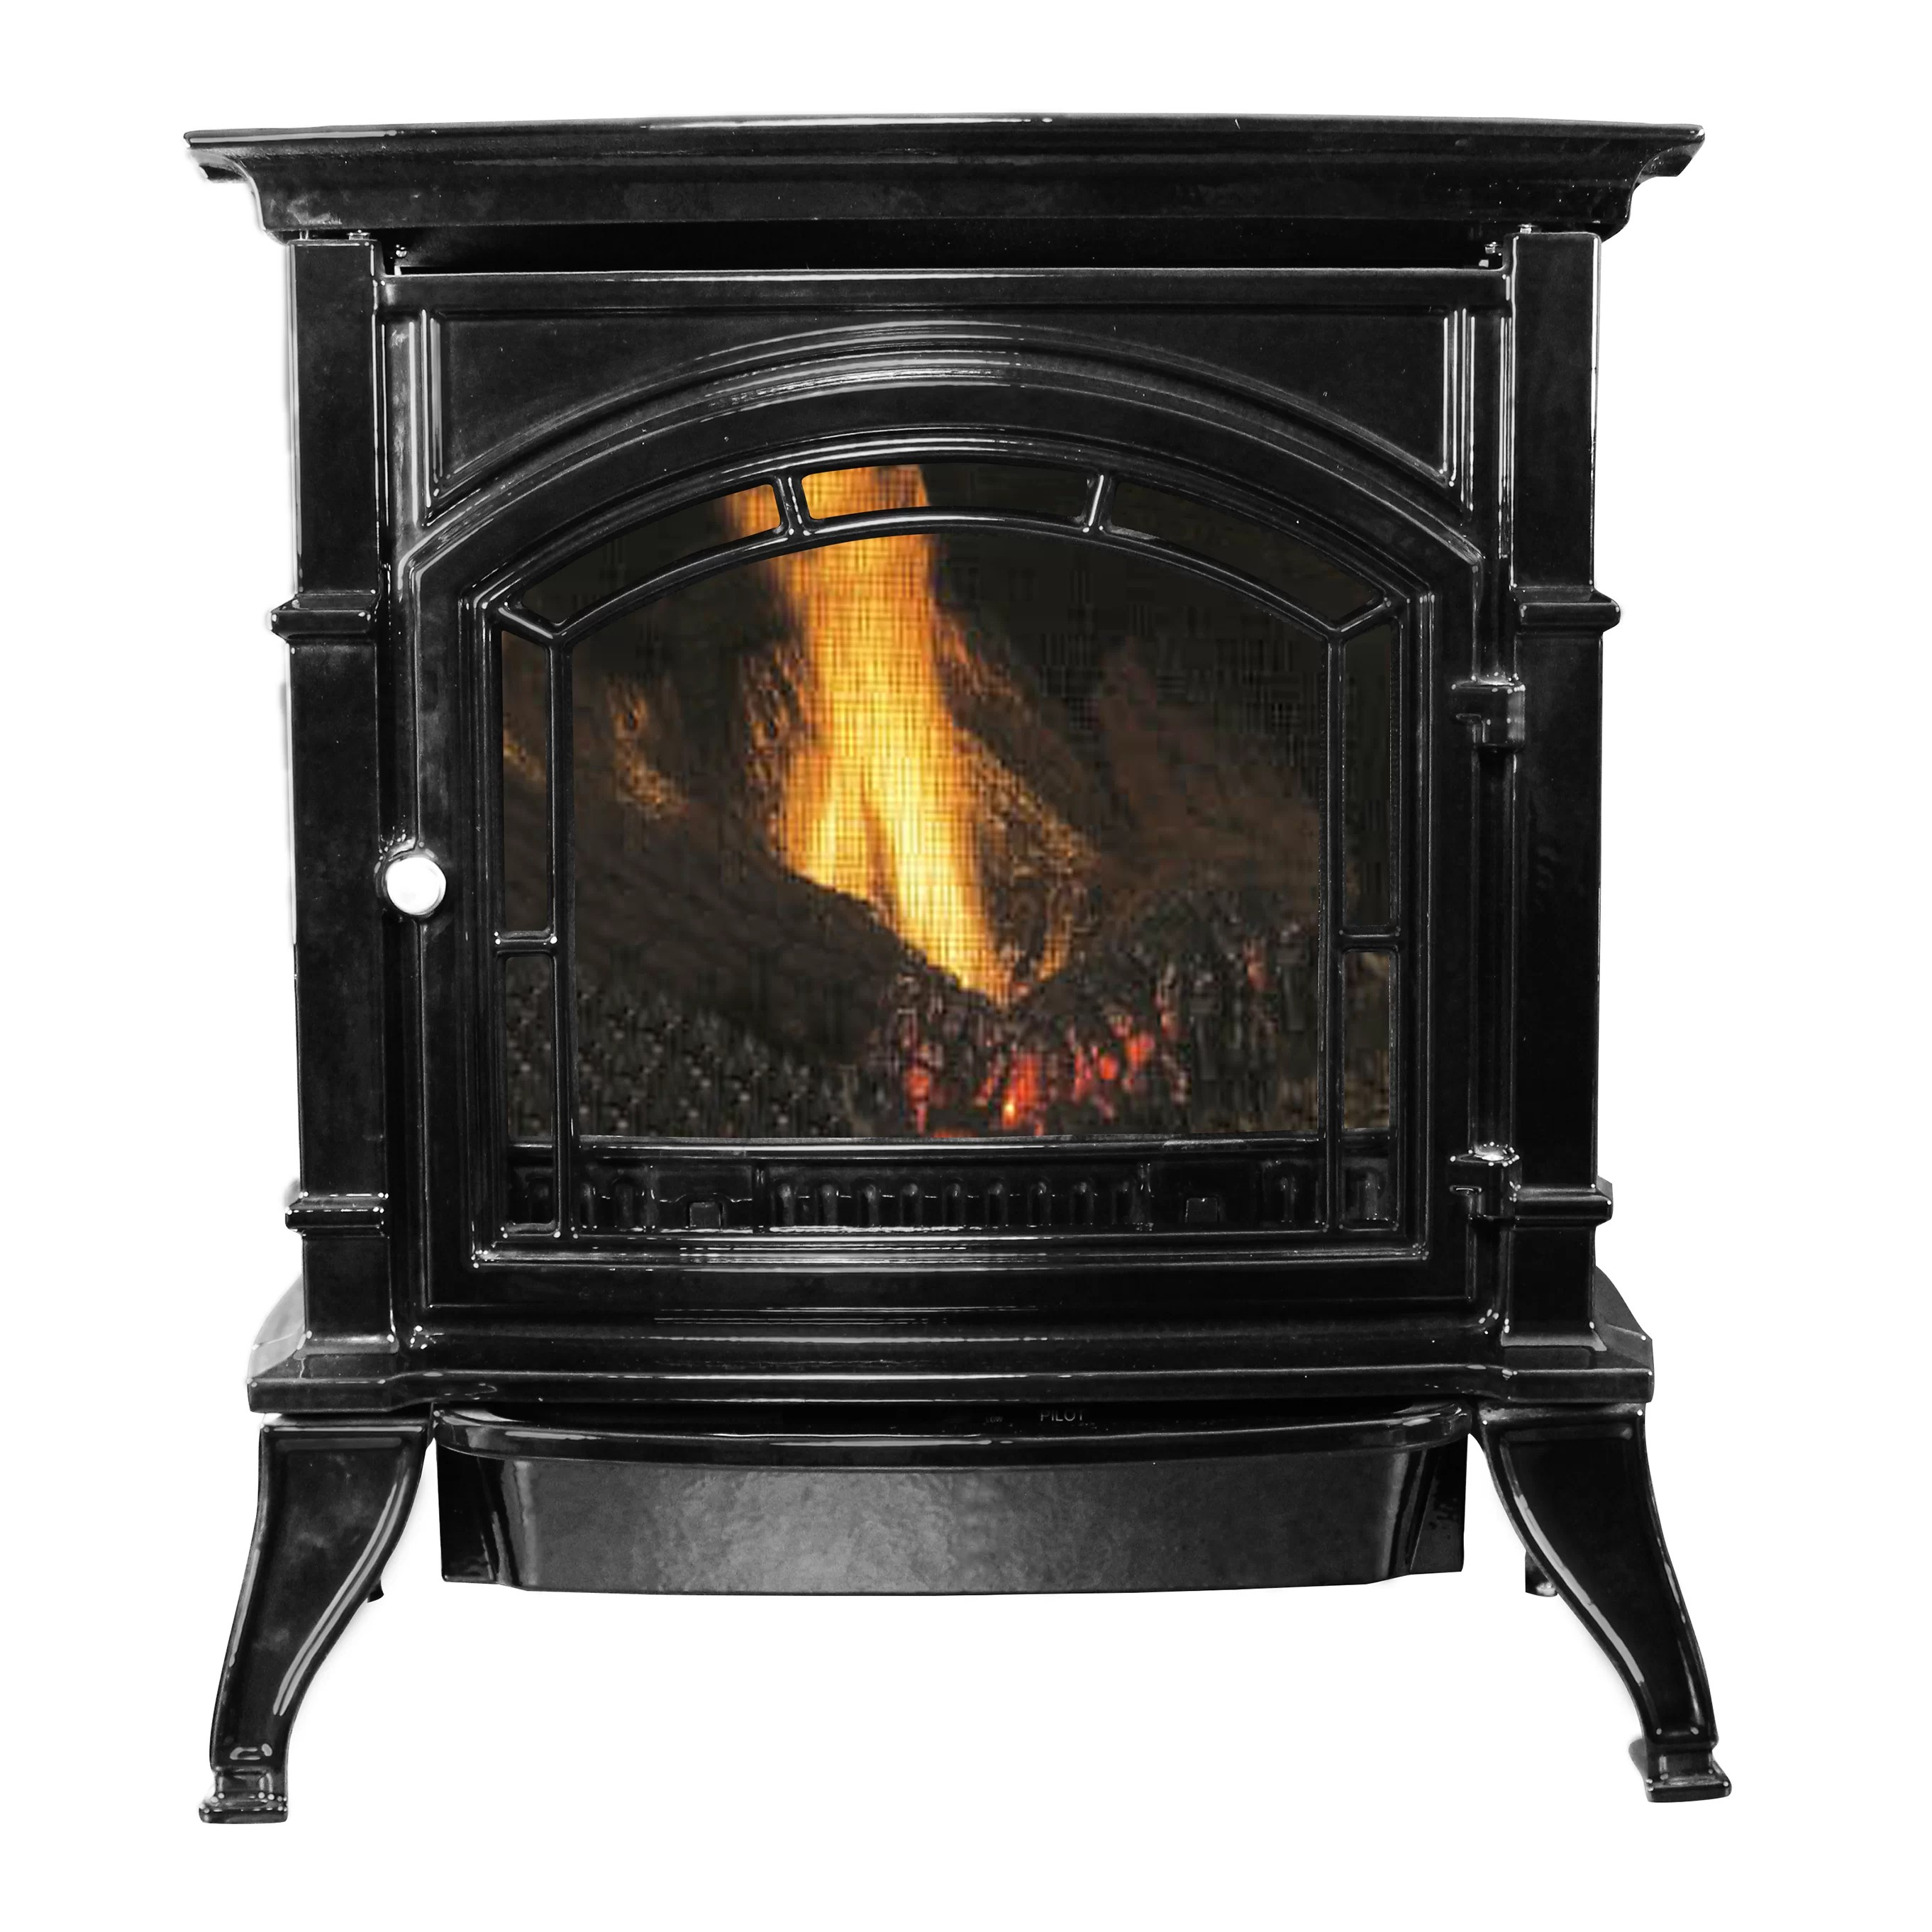 Direct Vent Gas Fireplace Ratings Vent Free Propane Natural Gas Stove